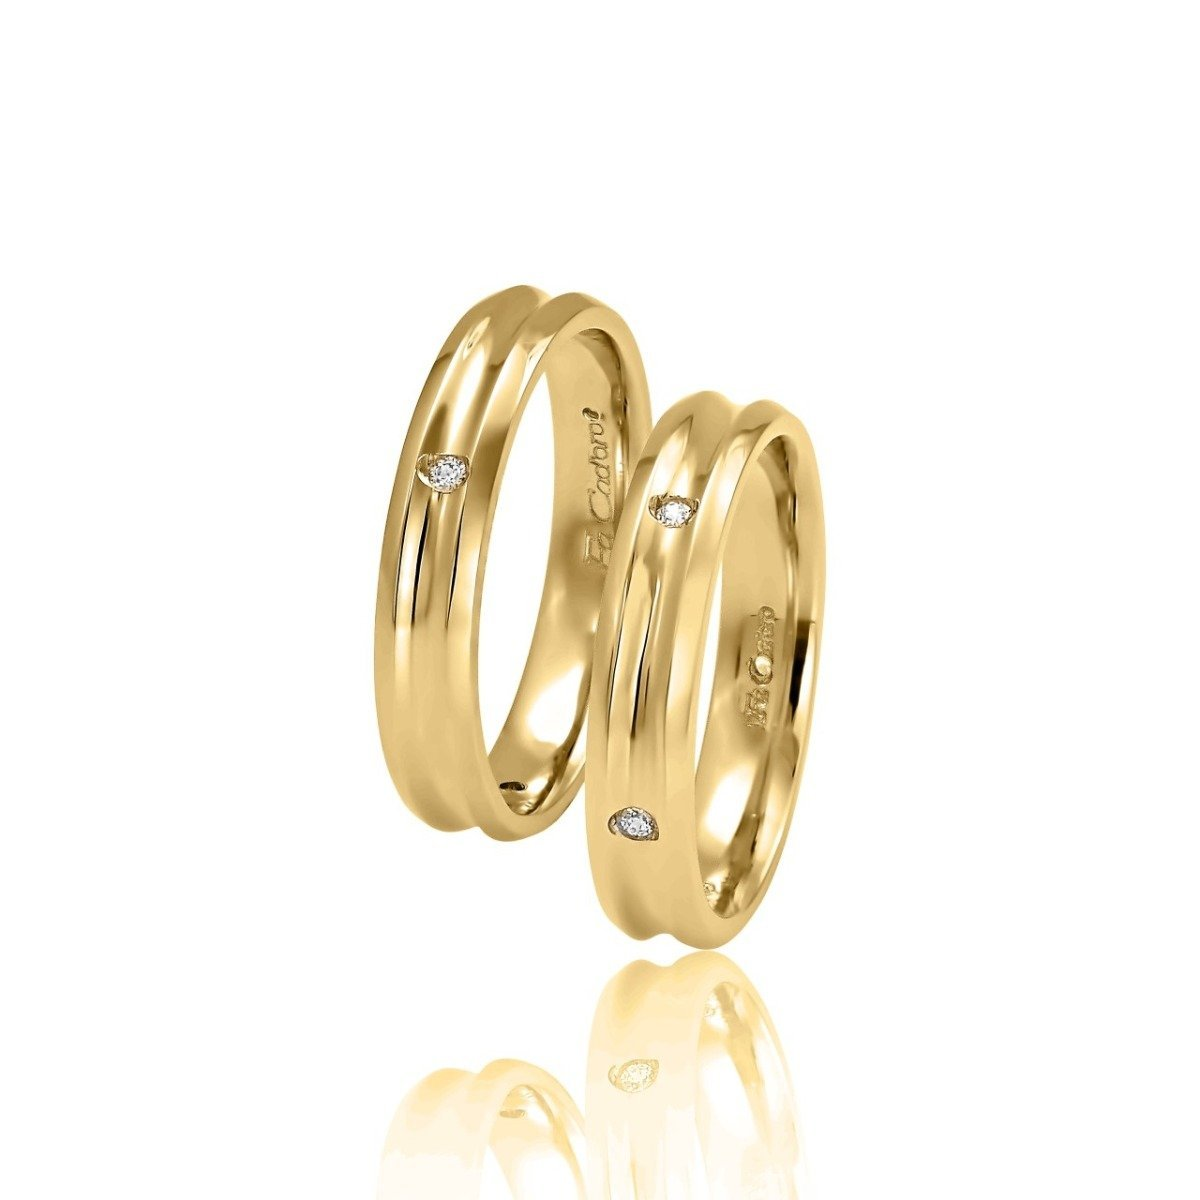 FaCad'oro WR-15 9ct and 14ct Gold Wedding Rings - Goldy Jewelry Store